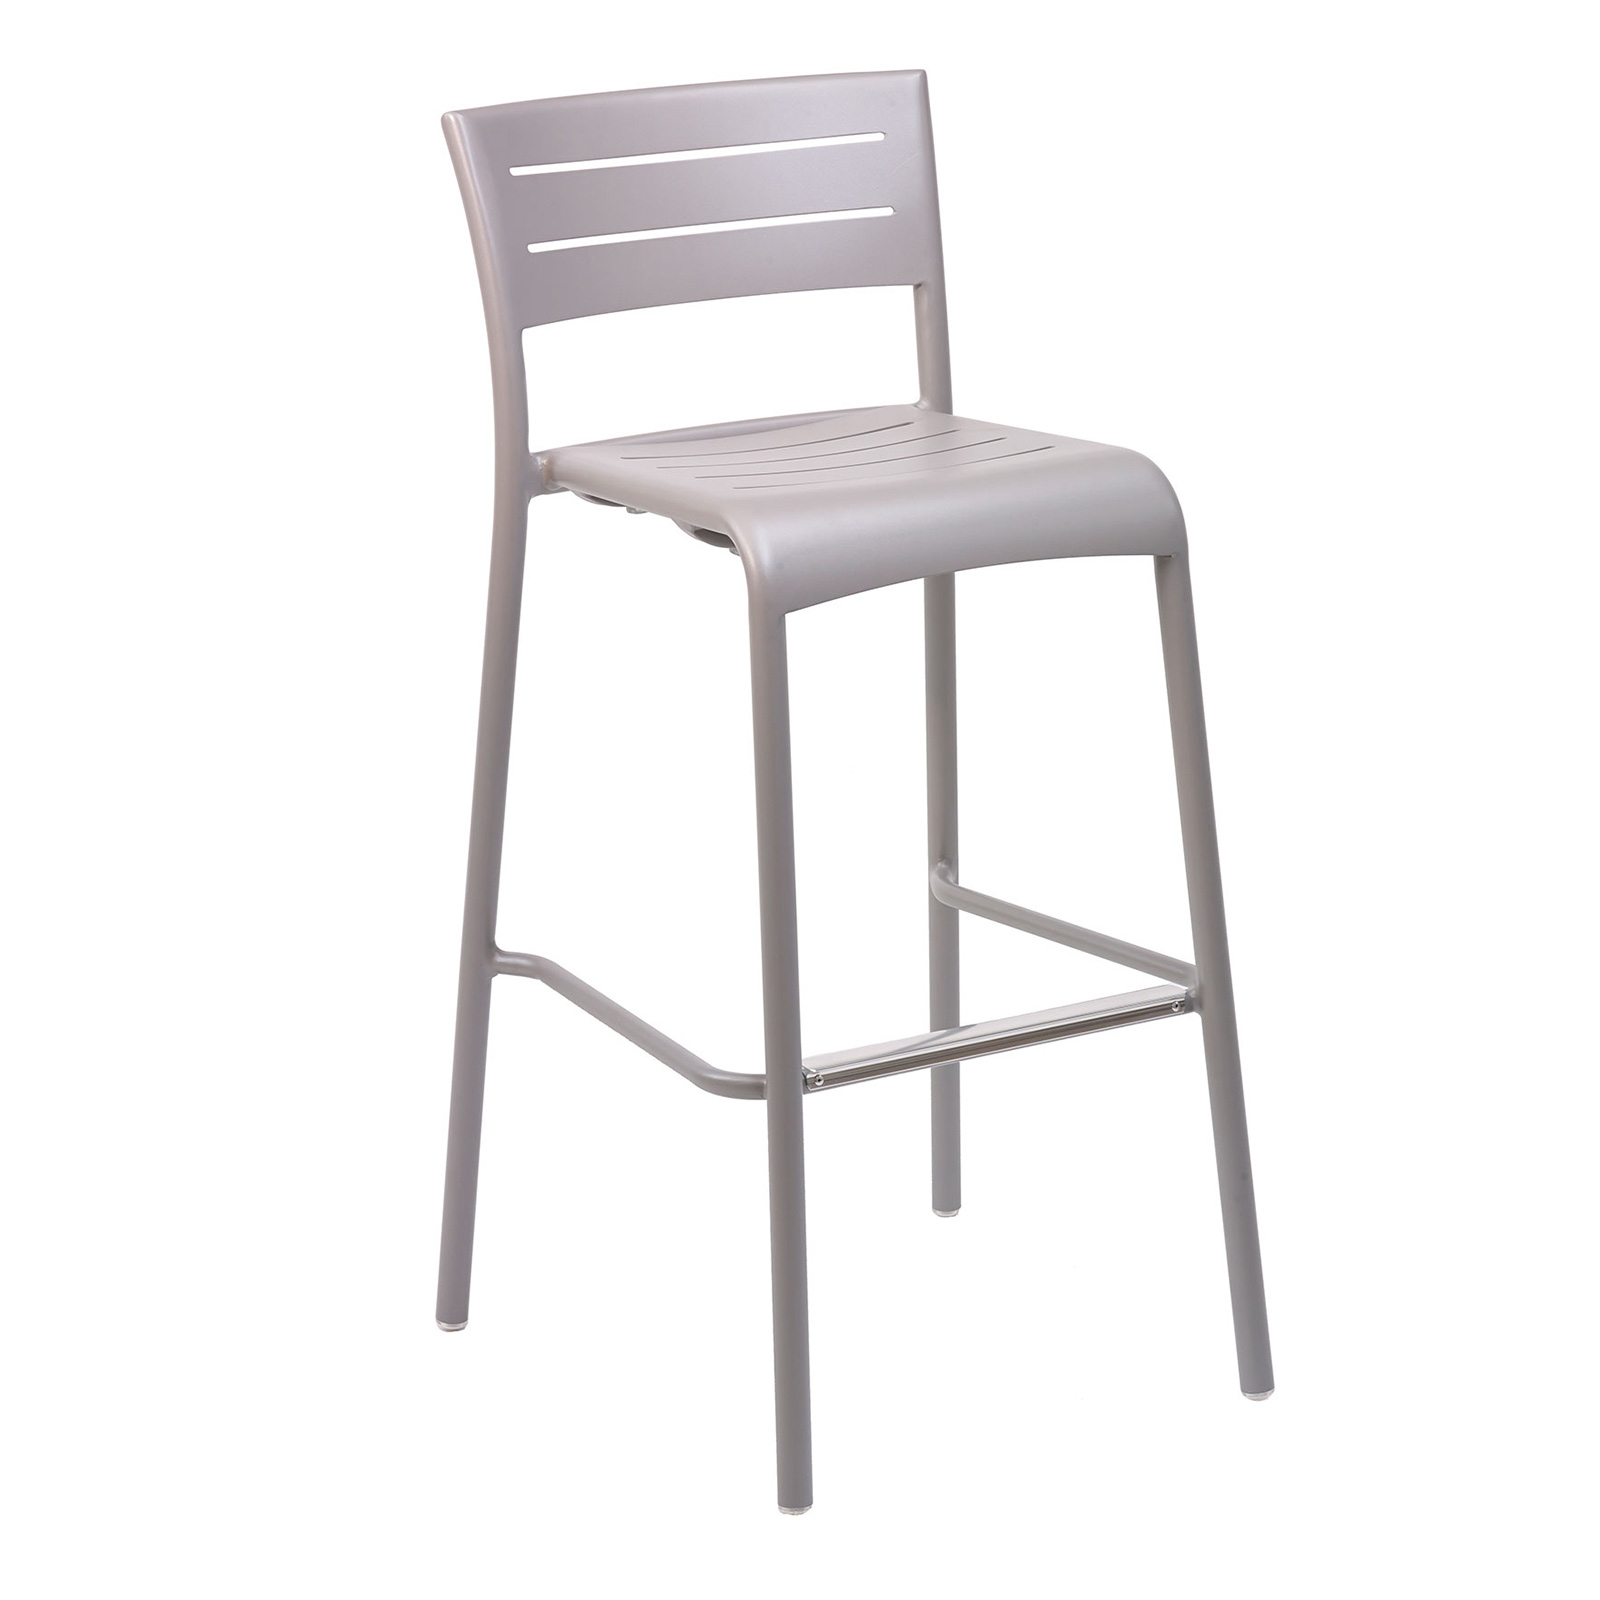 Florida Seating BAL-5000 S WARM GRAY/SILVER bar stool, stacking, outdoor